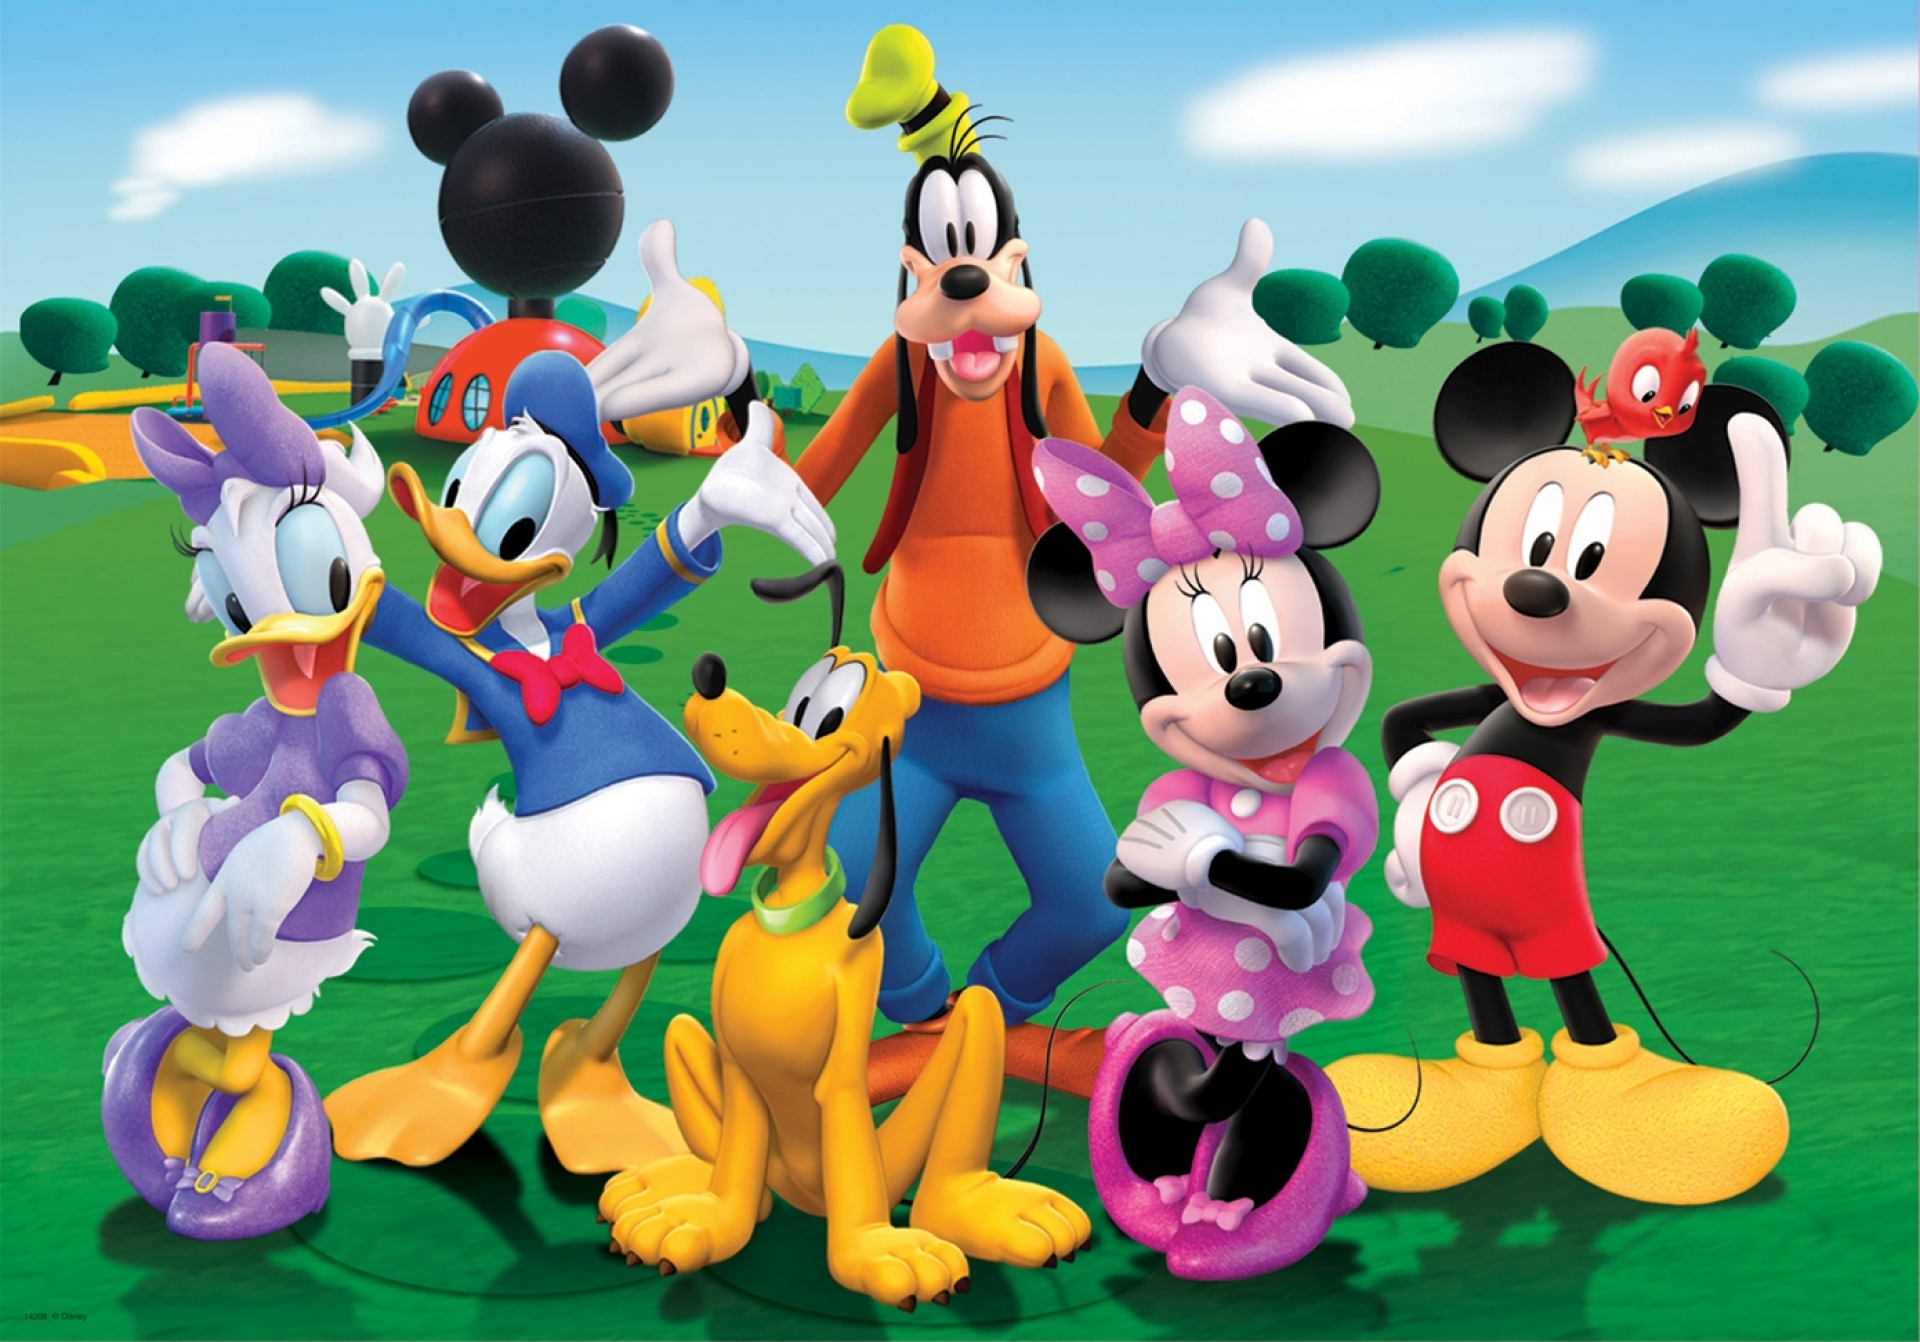 mickey mouse club house images mickey mouse club house cartoon